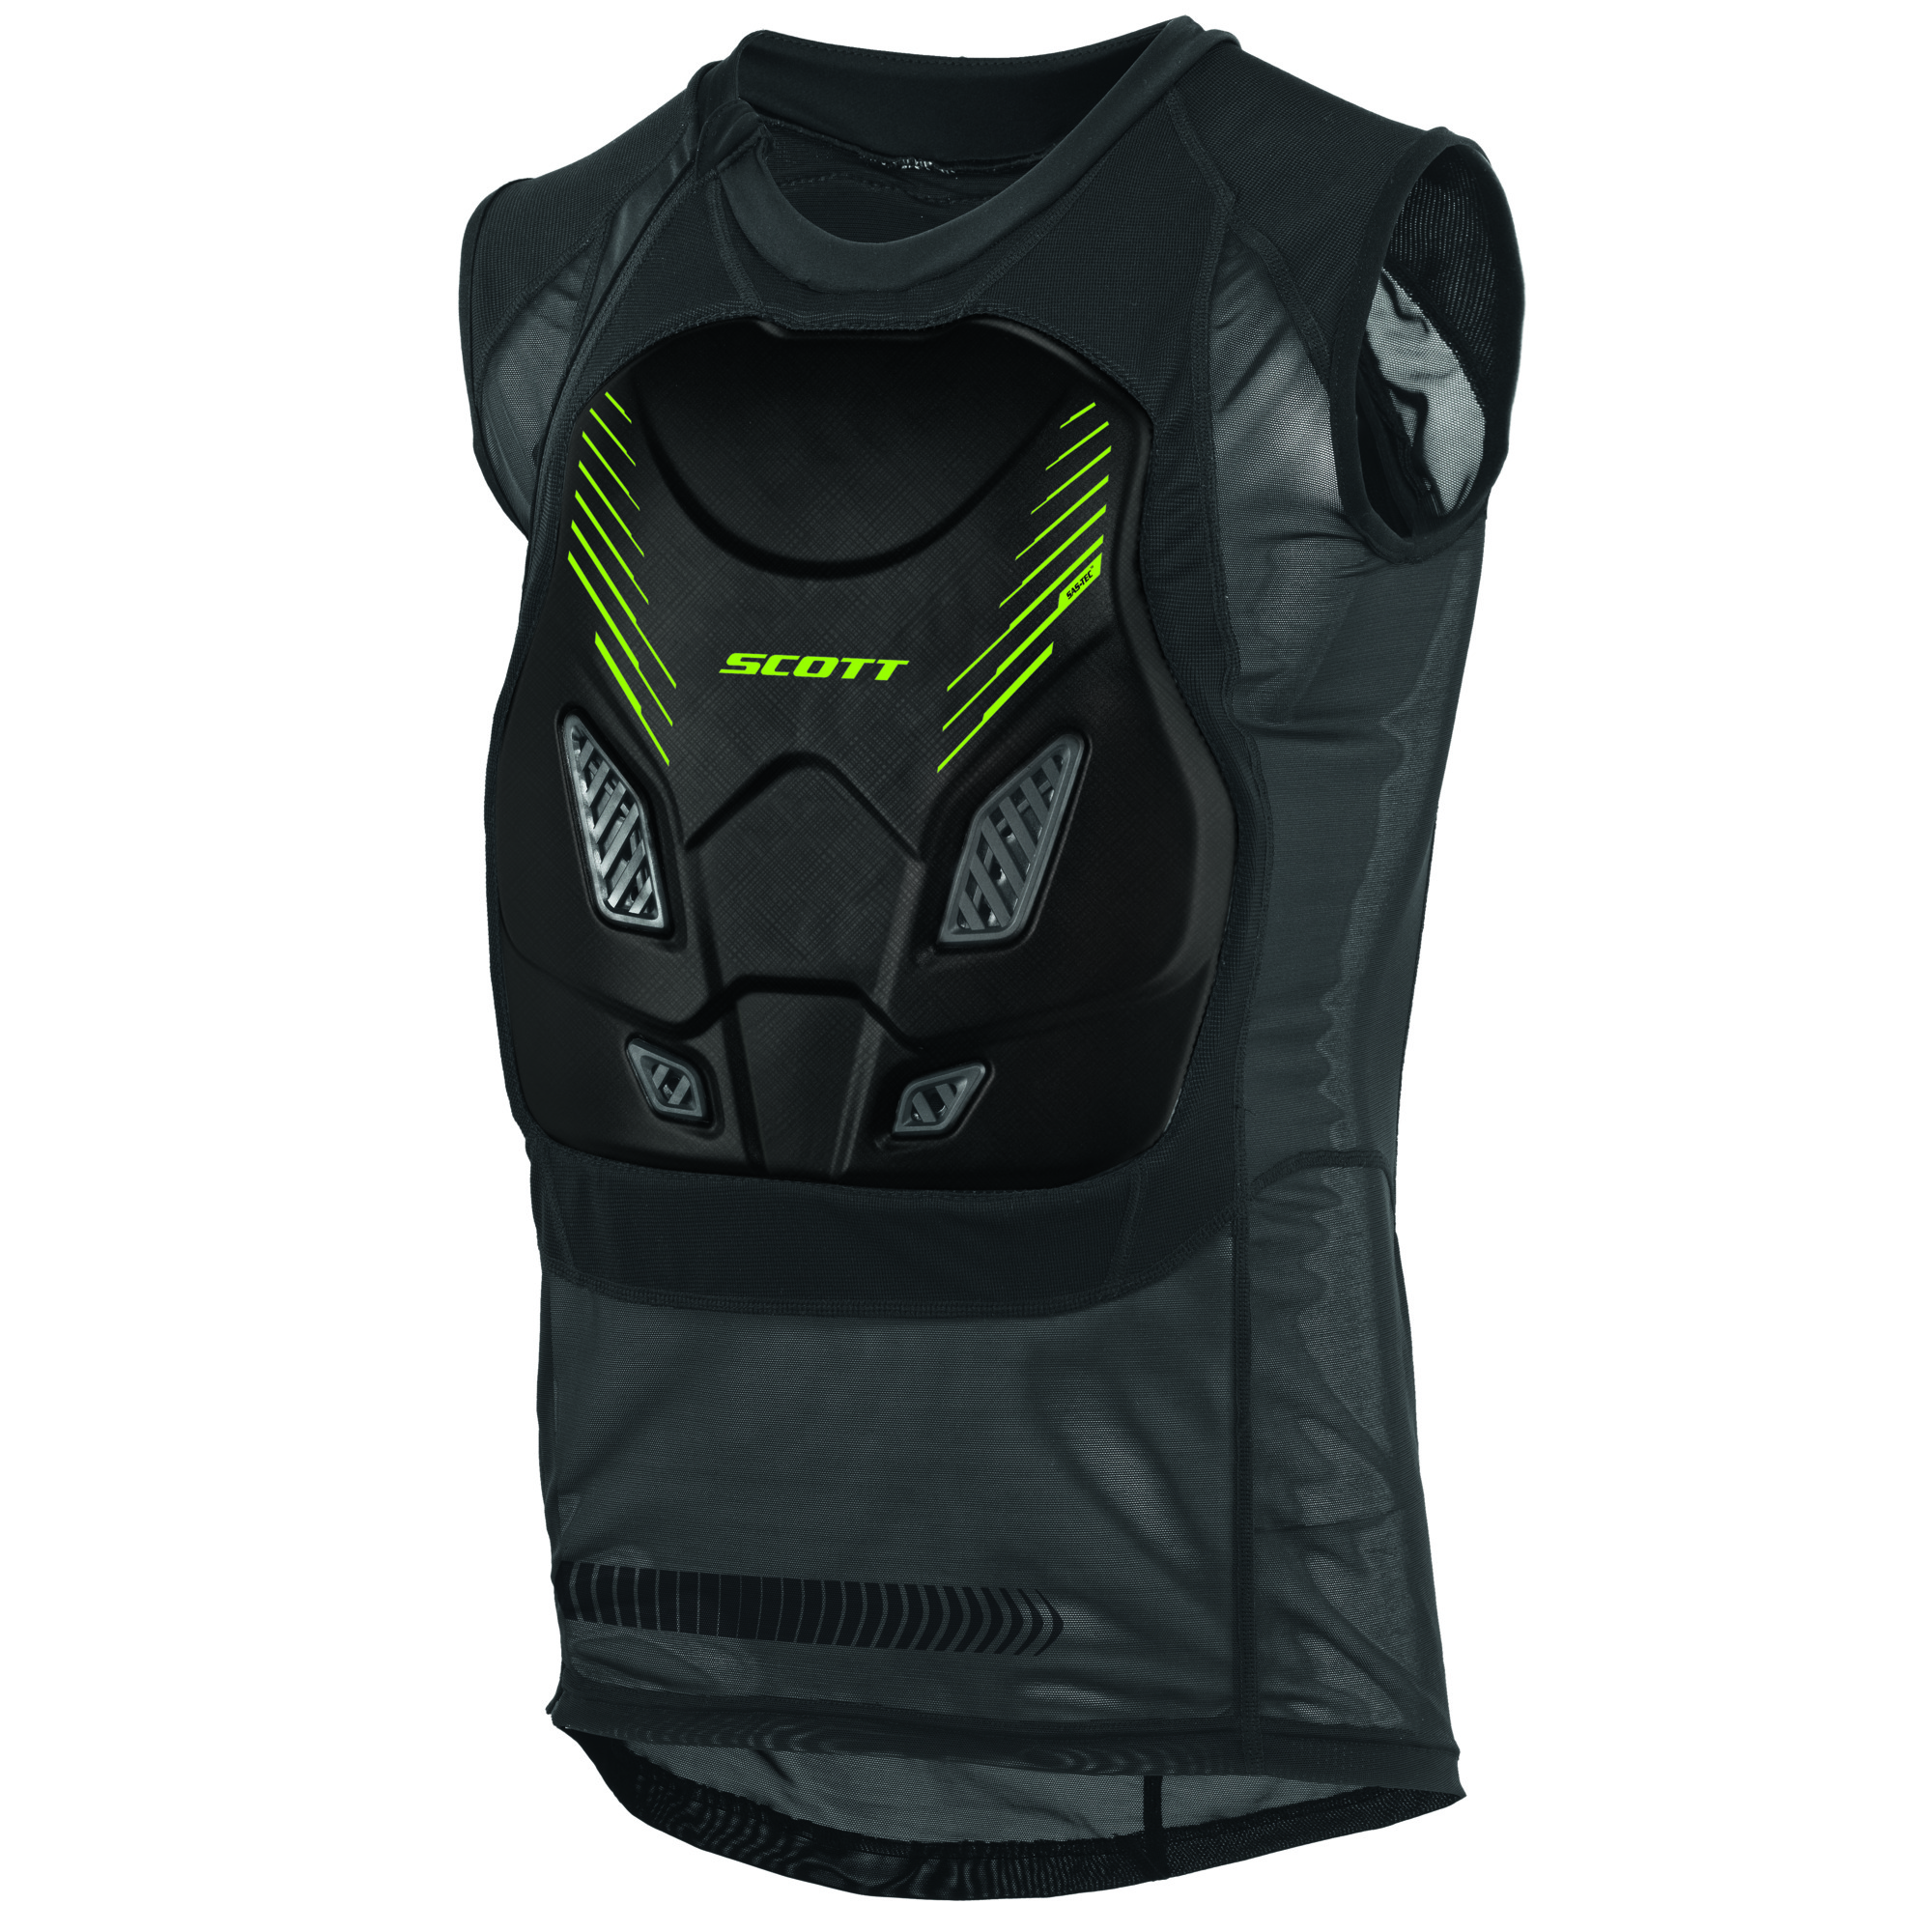 SCOTT Softcon Vest Protector